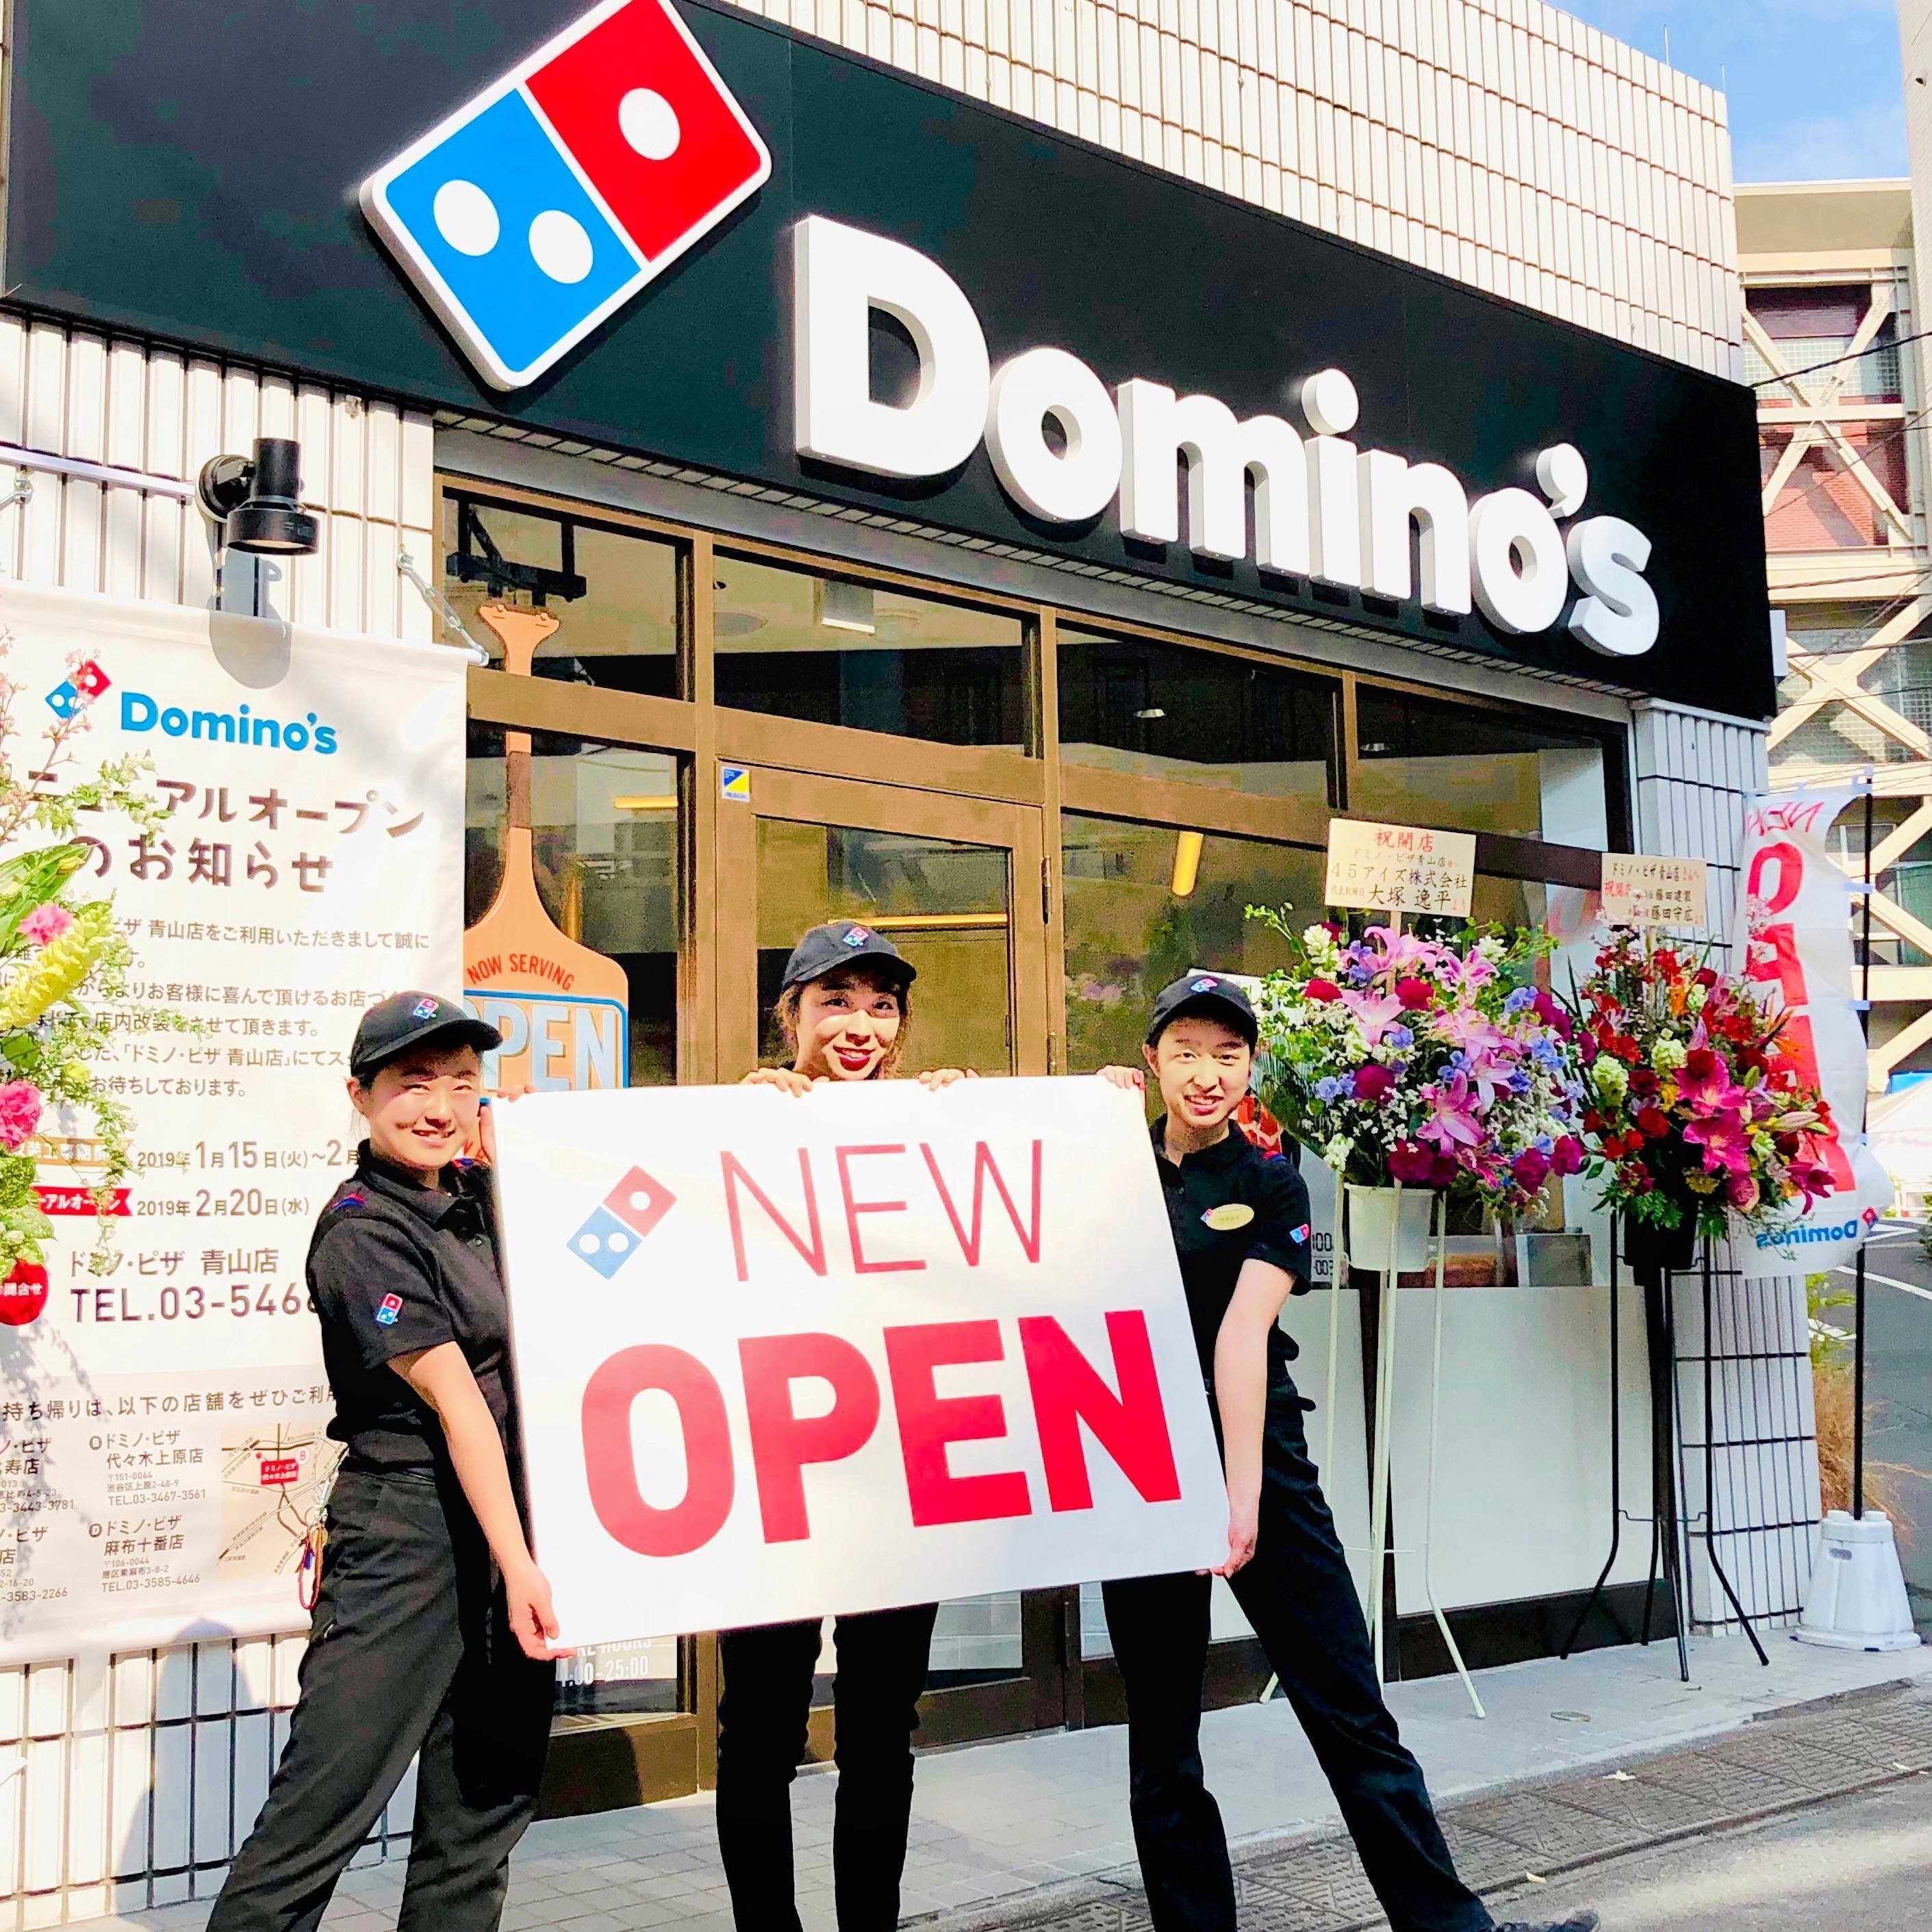 【Domino's Pizza】Pizza delivery staff wanted! ( ¥1,250/h in Sekiguchi-Mejiro)Normal driver's license OK!